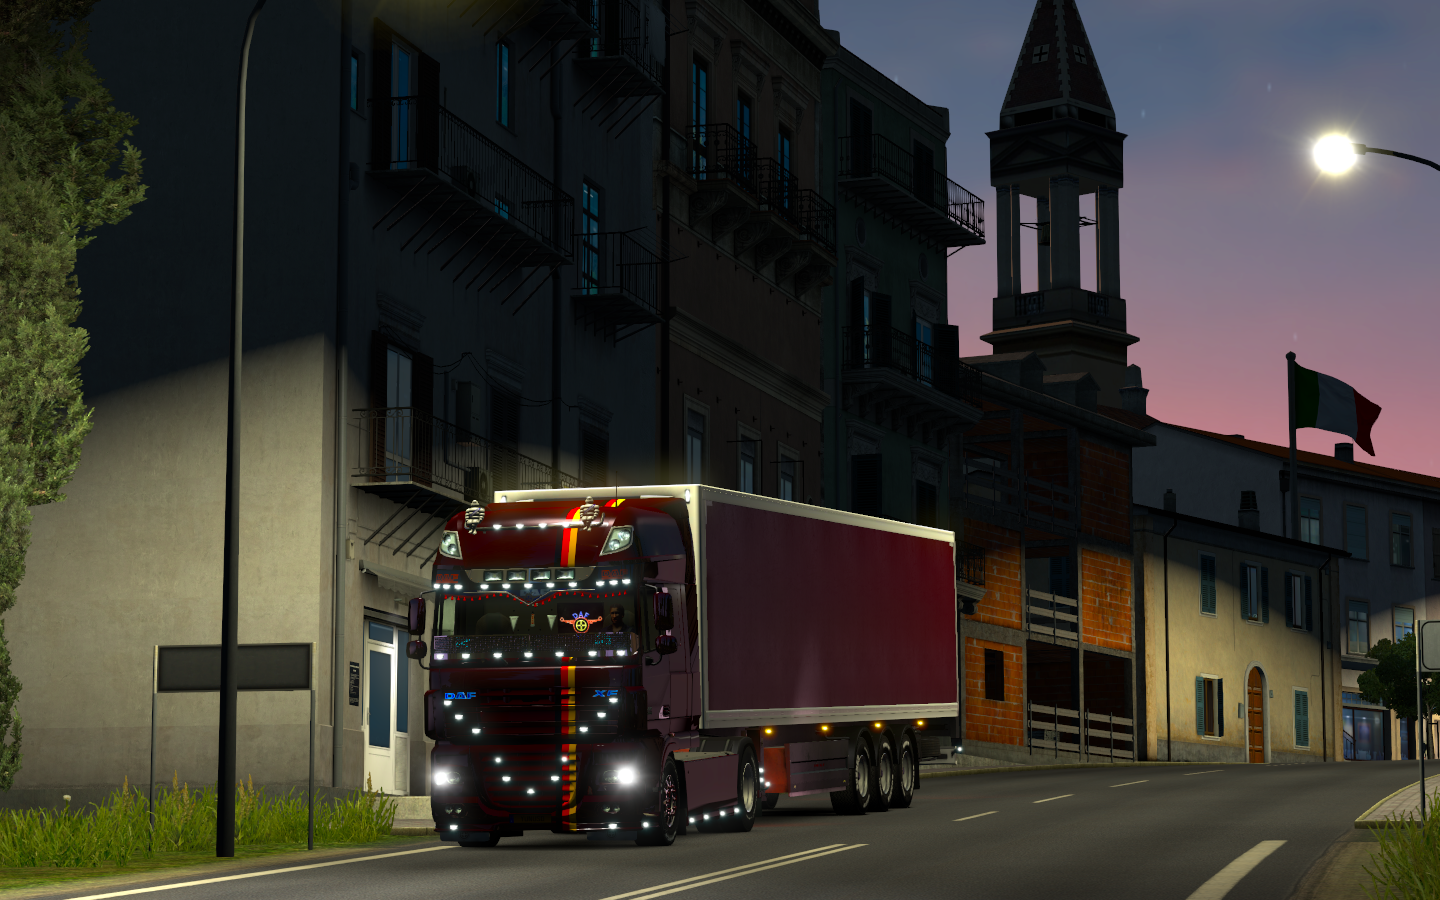 ets2_20190420_173120_00.png